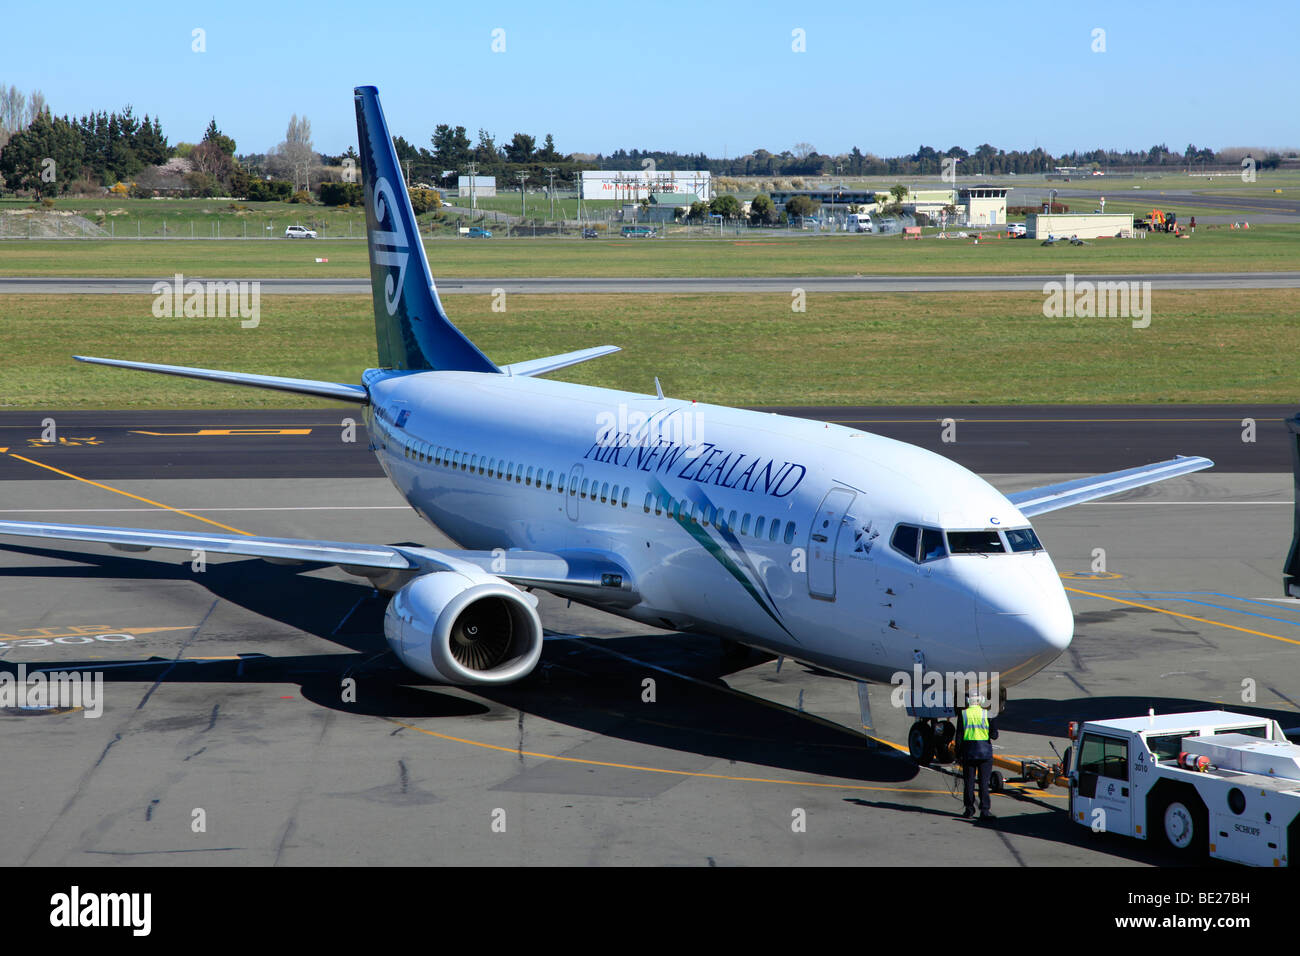 Air New Zealand Boeing 737 pushed from gate by tug at Christchurch Airport,Canterbury,South Island,New Zealand - Stock Image